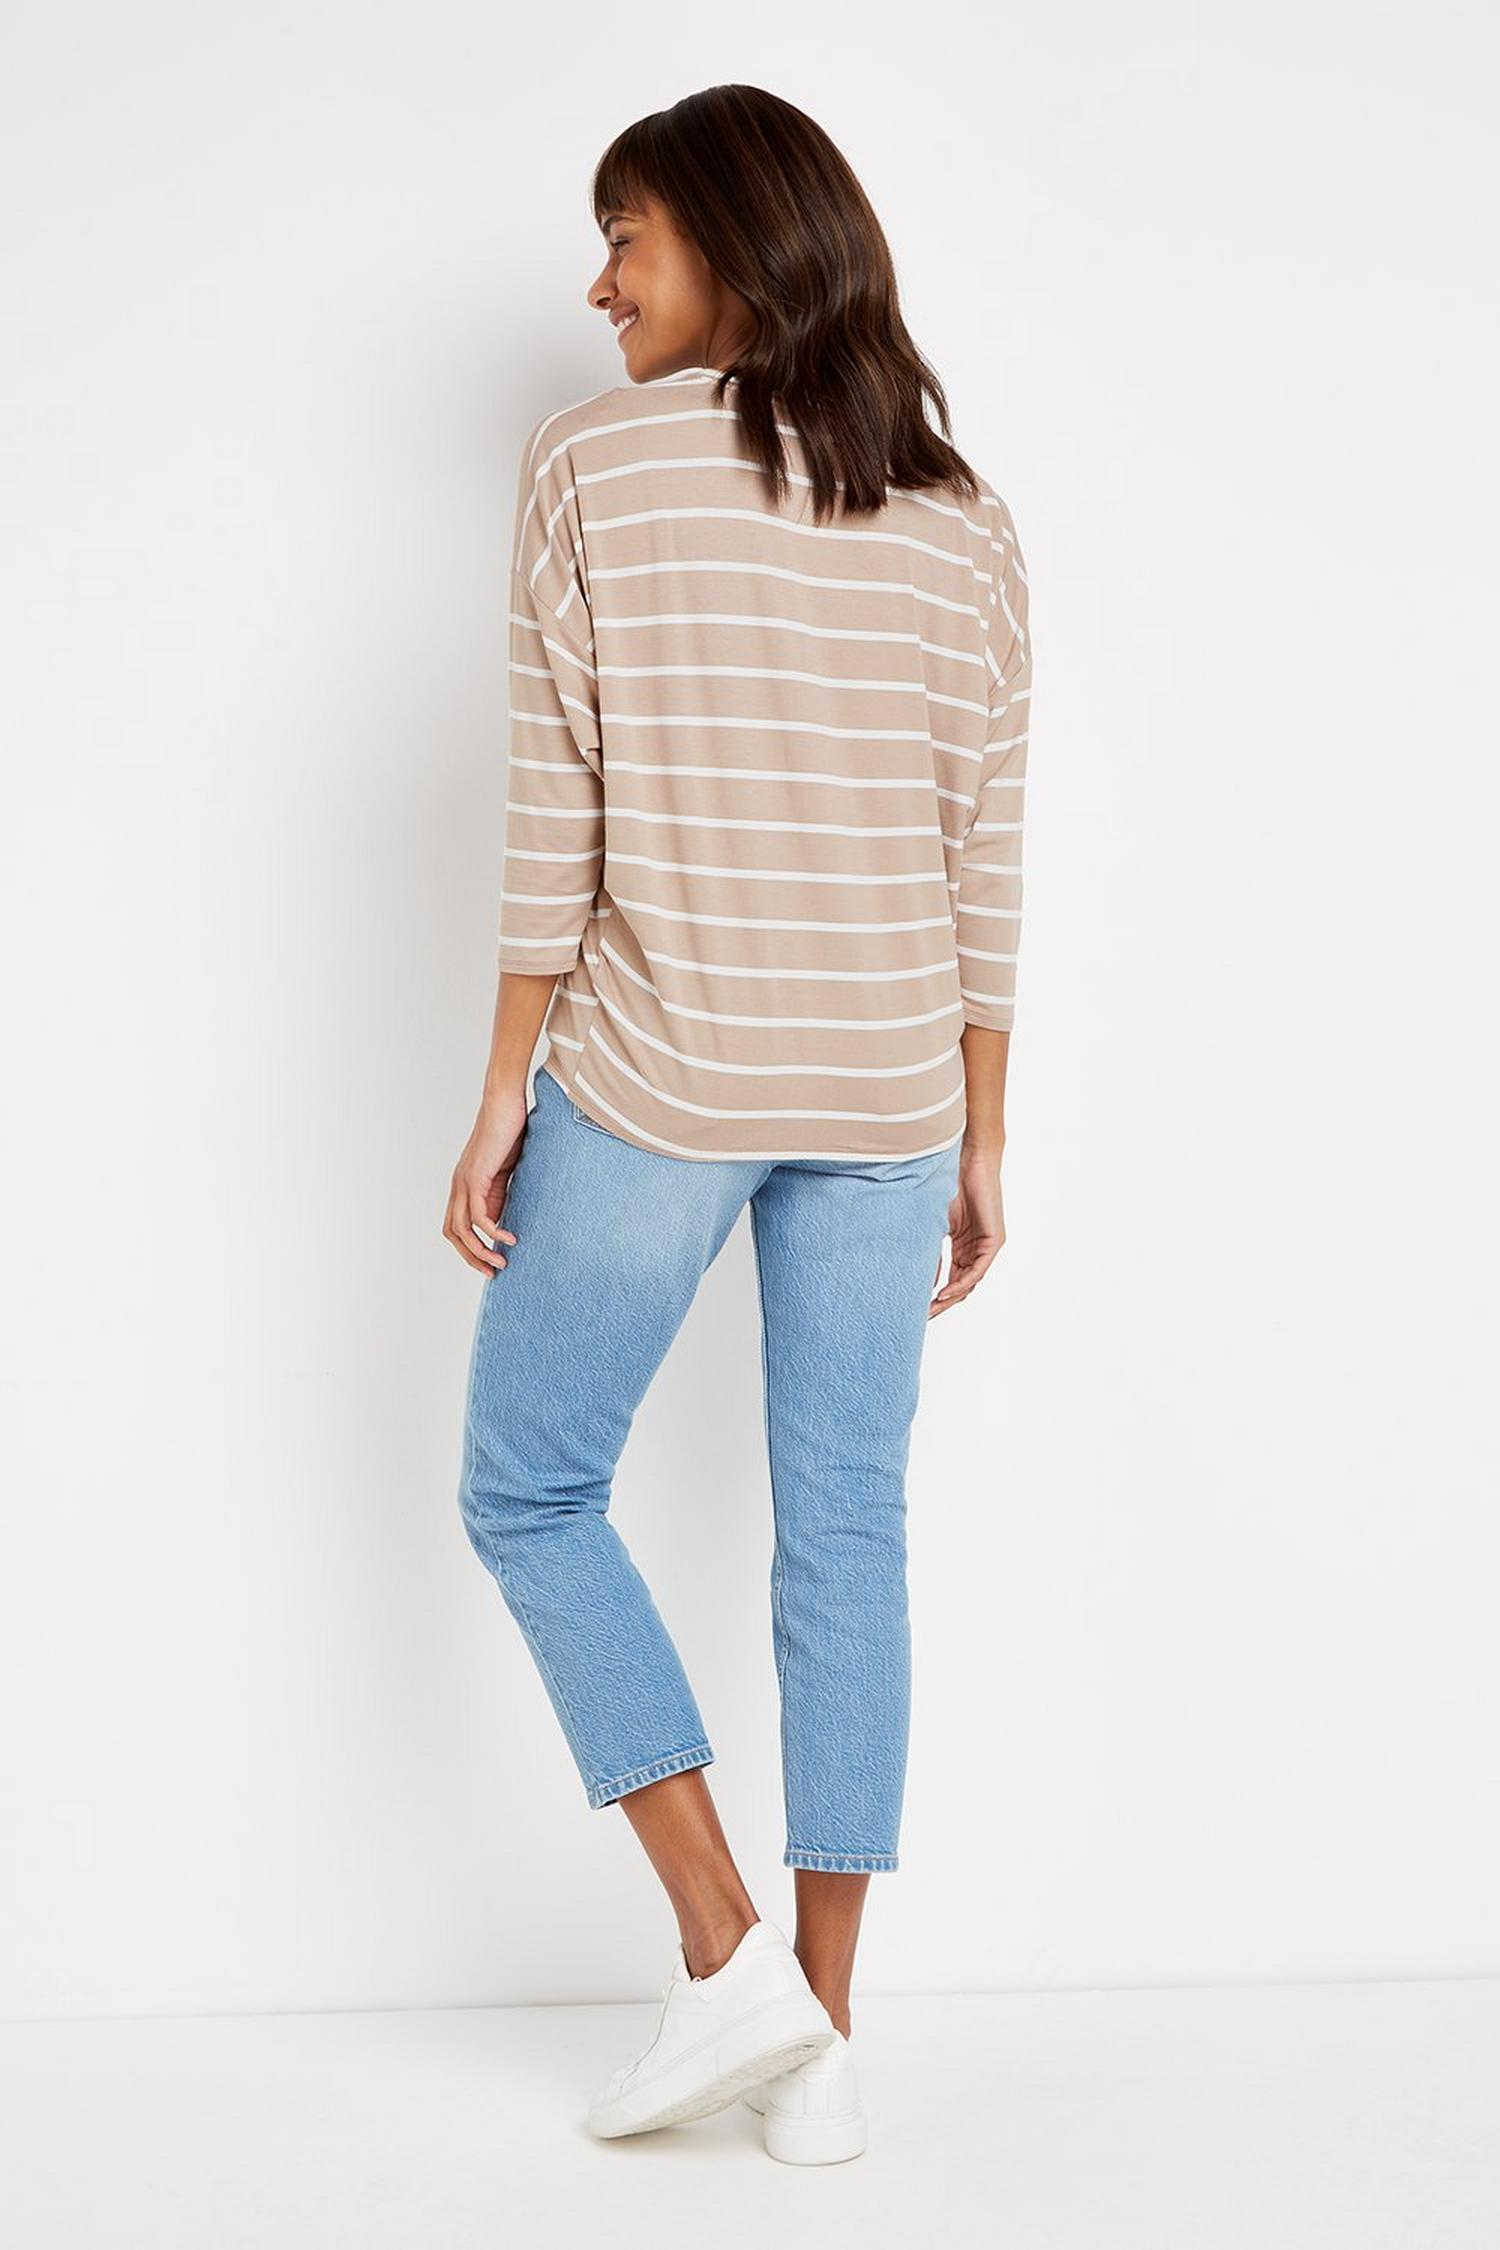 103 Taupe Striped Batwing Top image number 4